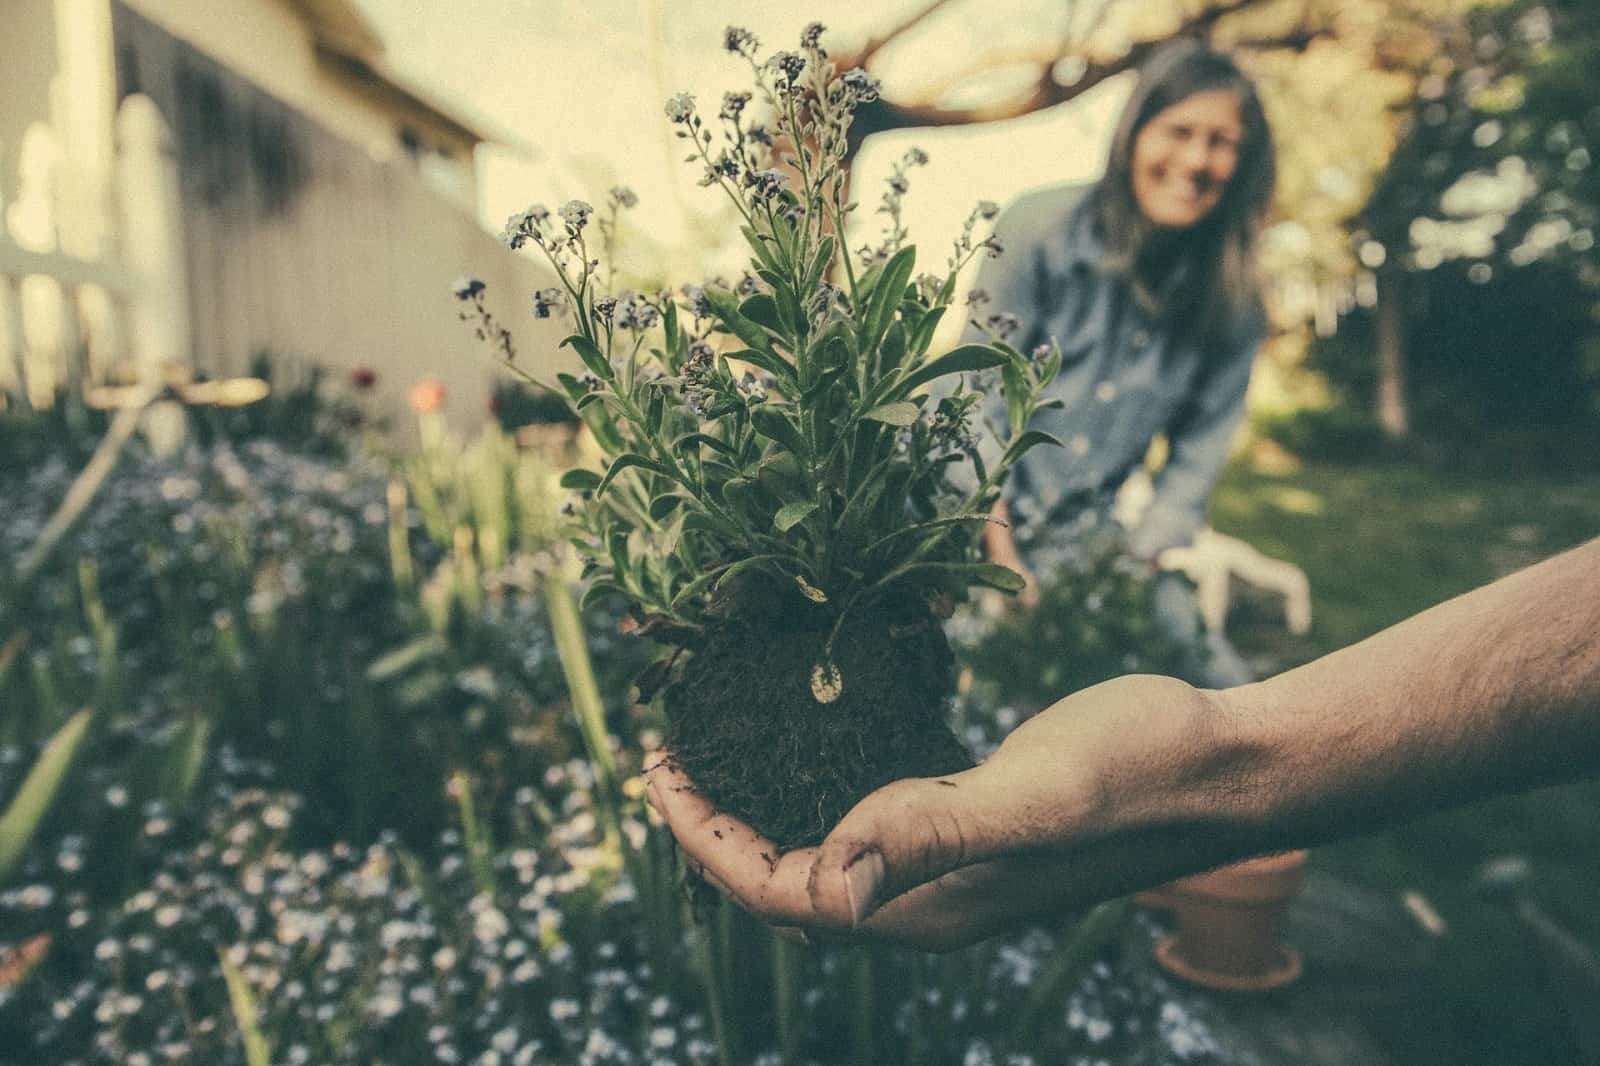 How To Find The Top Gardening Gear And Make Your Job Easier. The plant in soil